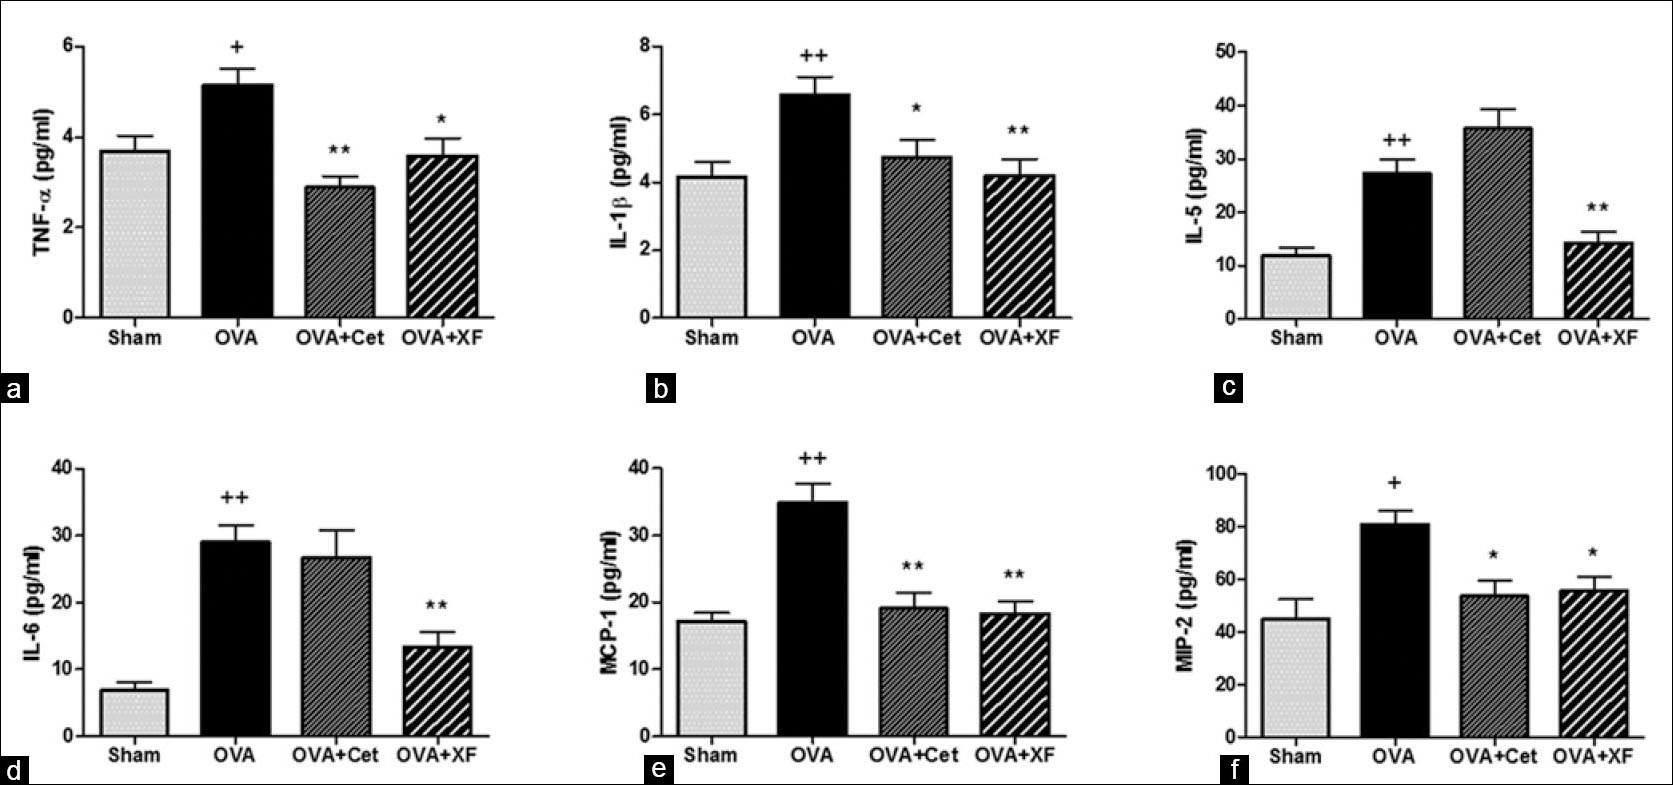 Figure 4: Effects of Xanthii Fructus on the serum levels of cytokines in the allergic rhinitis (AR) model. The concentrations of tumor necrosis factor-α (a), interleukine-1 beta (IL-1β) (b), IL-5 (c), IL-6 (d), monocyte chemoattractant protein-1 (e) and macrophage inflammatory protein-2 (f) in the sera of AR model were measured by mouse cytokine/chemokine magnetic bead panel kits. Independent experiments were performed (n = 8) and the columns and error bars represent the mean ± standard error. +P < 0.05 and ++P < 0.01, significantly different from the sham group. *P < 0.05 and **P < 0.01, significantly different from the ovalbumin group